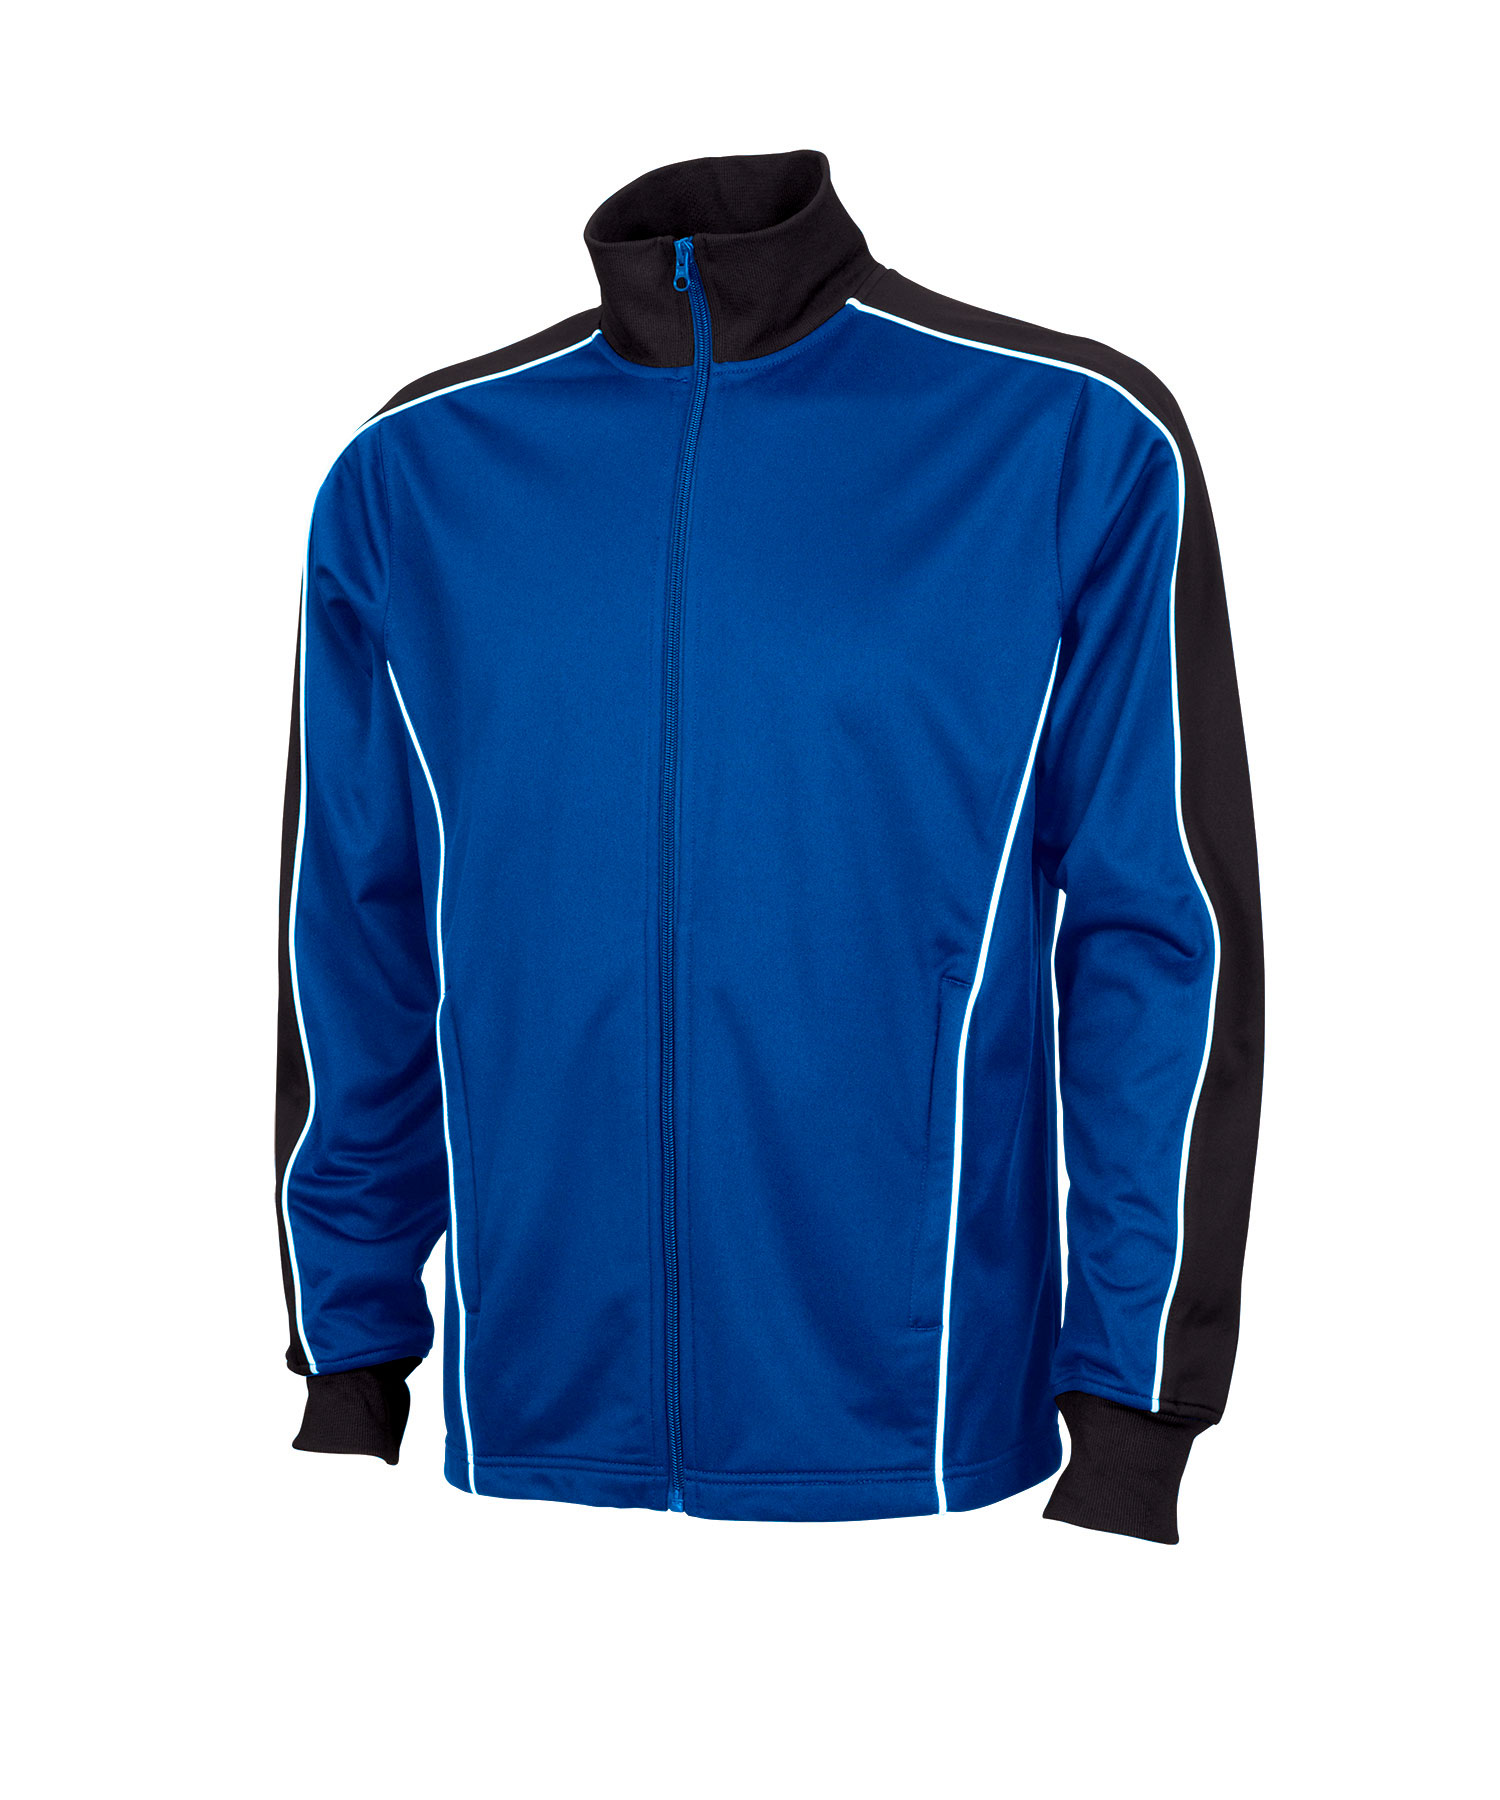 Mens Rev Jacket by Charles River